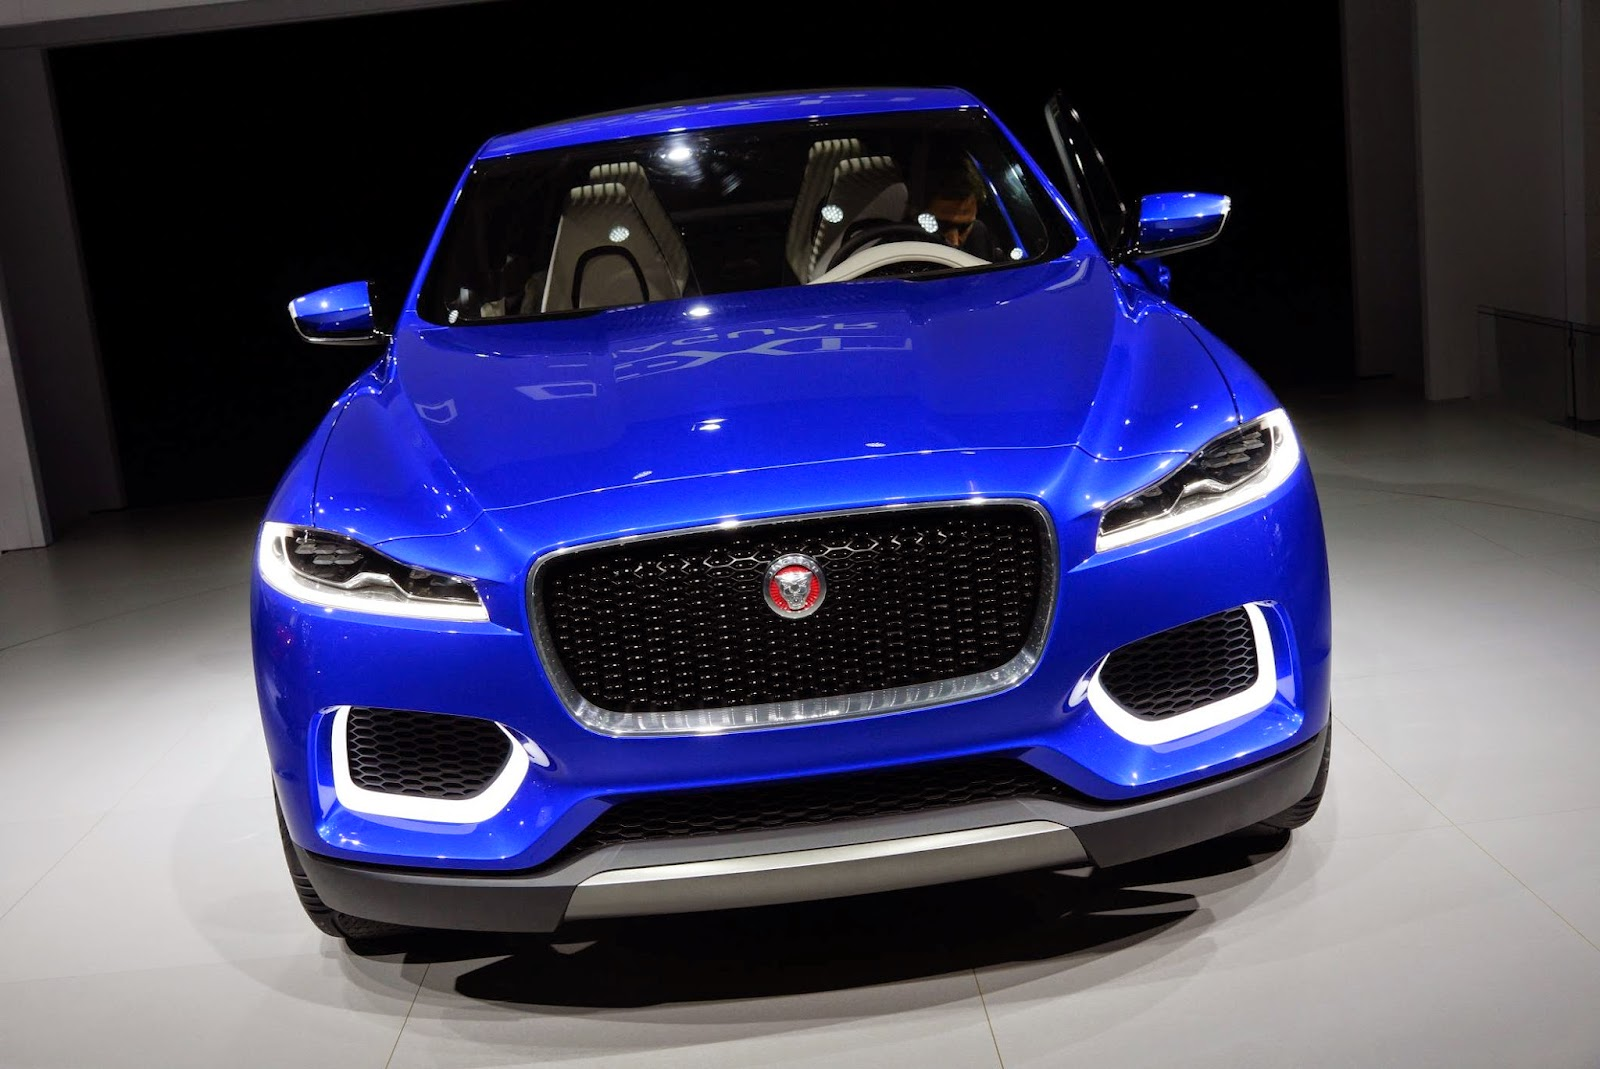 2015-Jaguar-CX-17-front-view